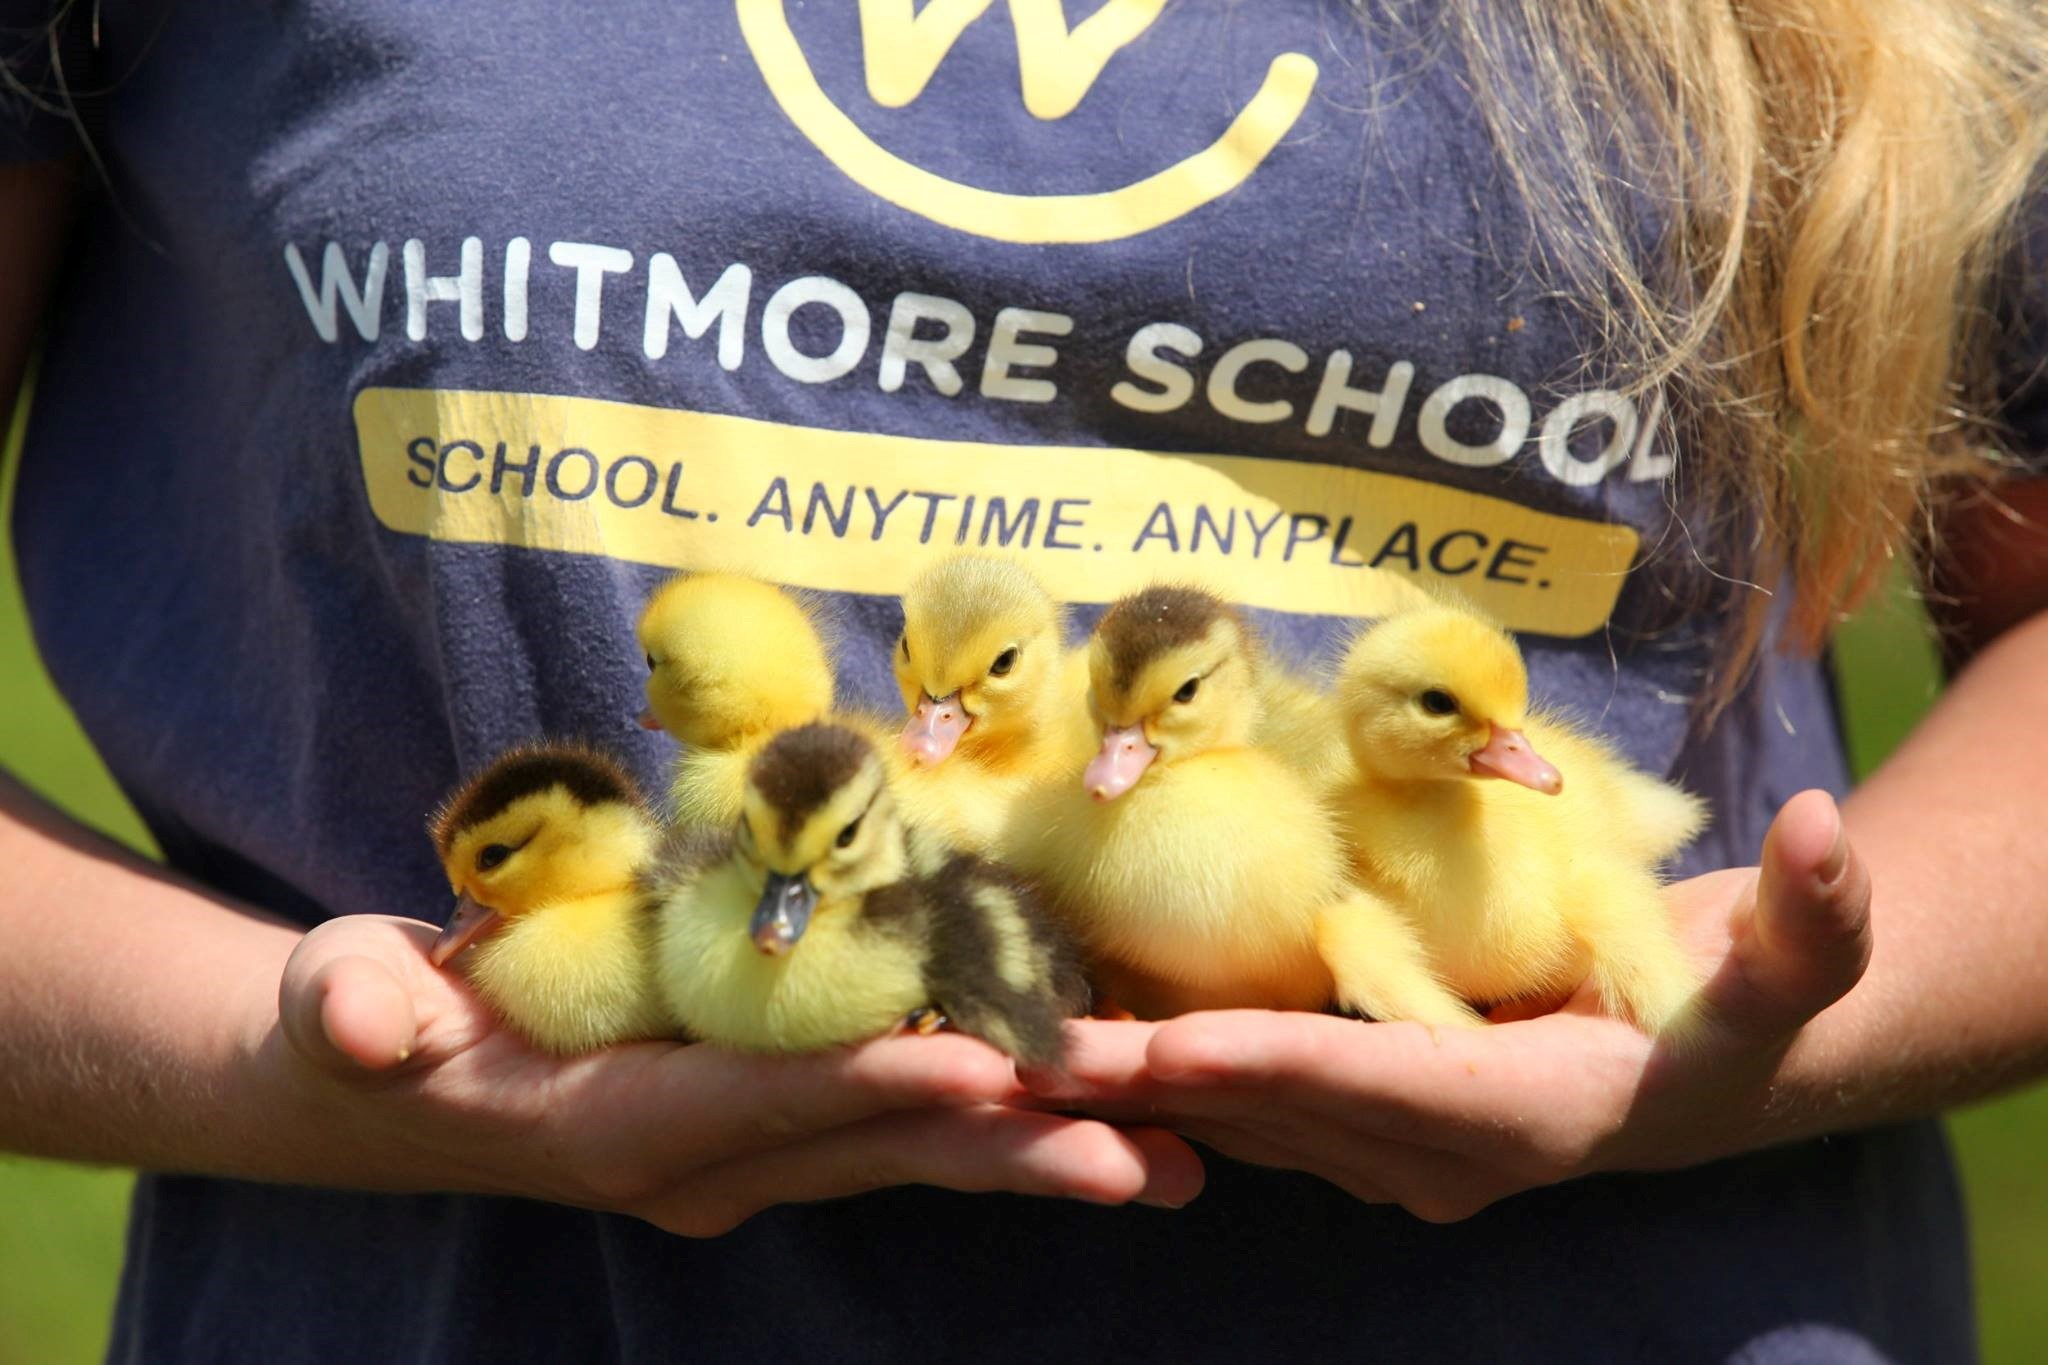 teen girl in Whitmore School T-shirt holding ducklings